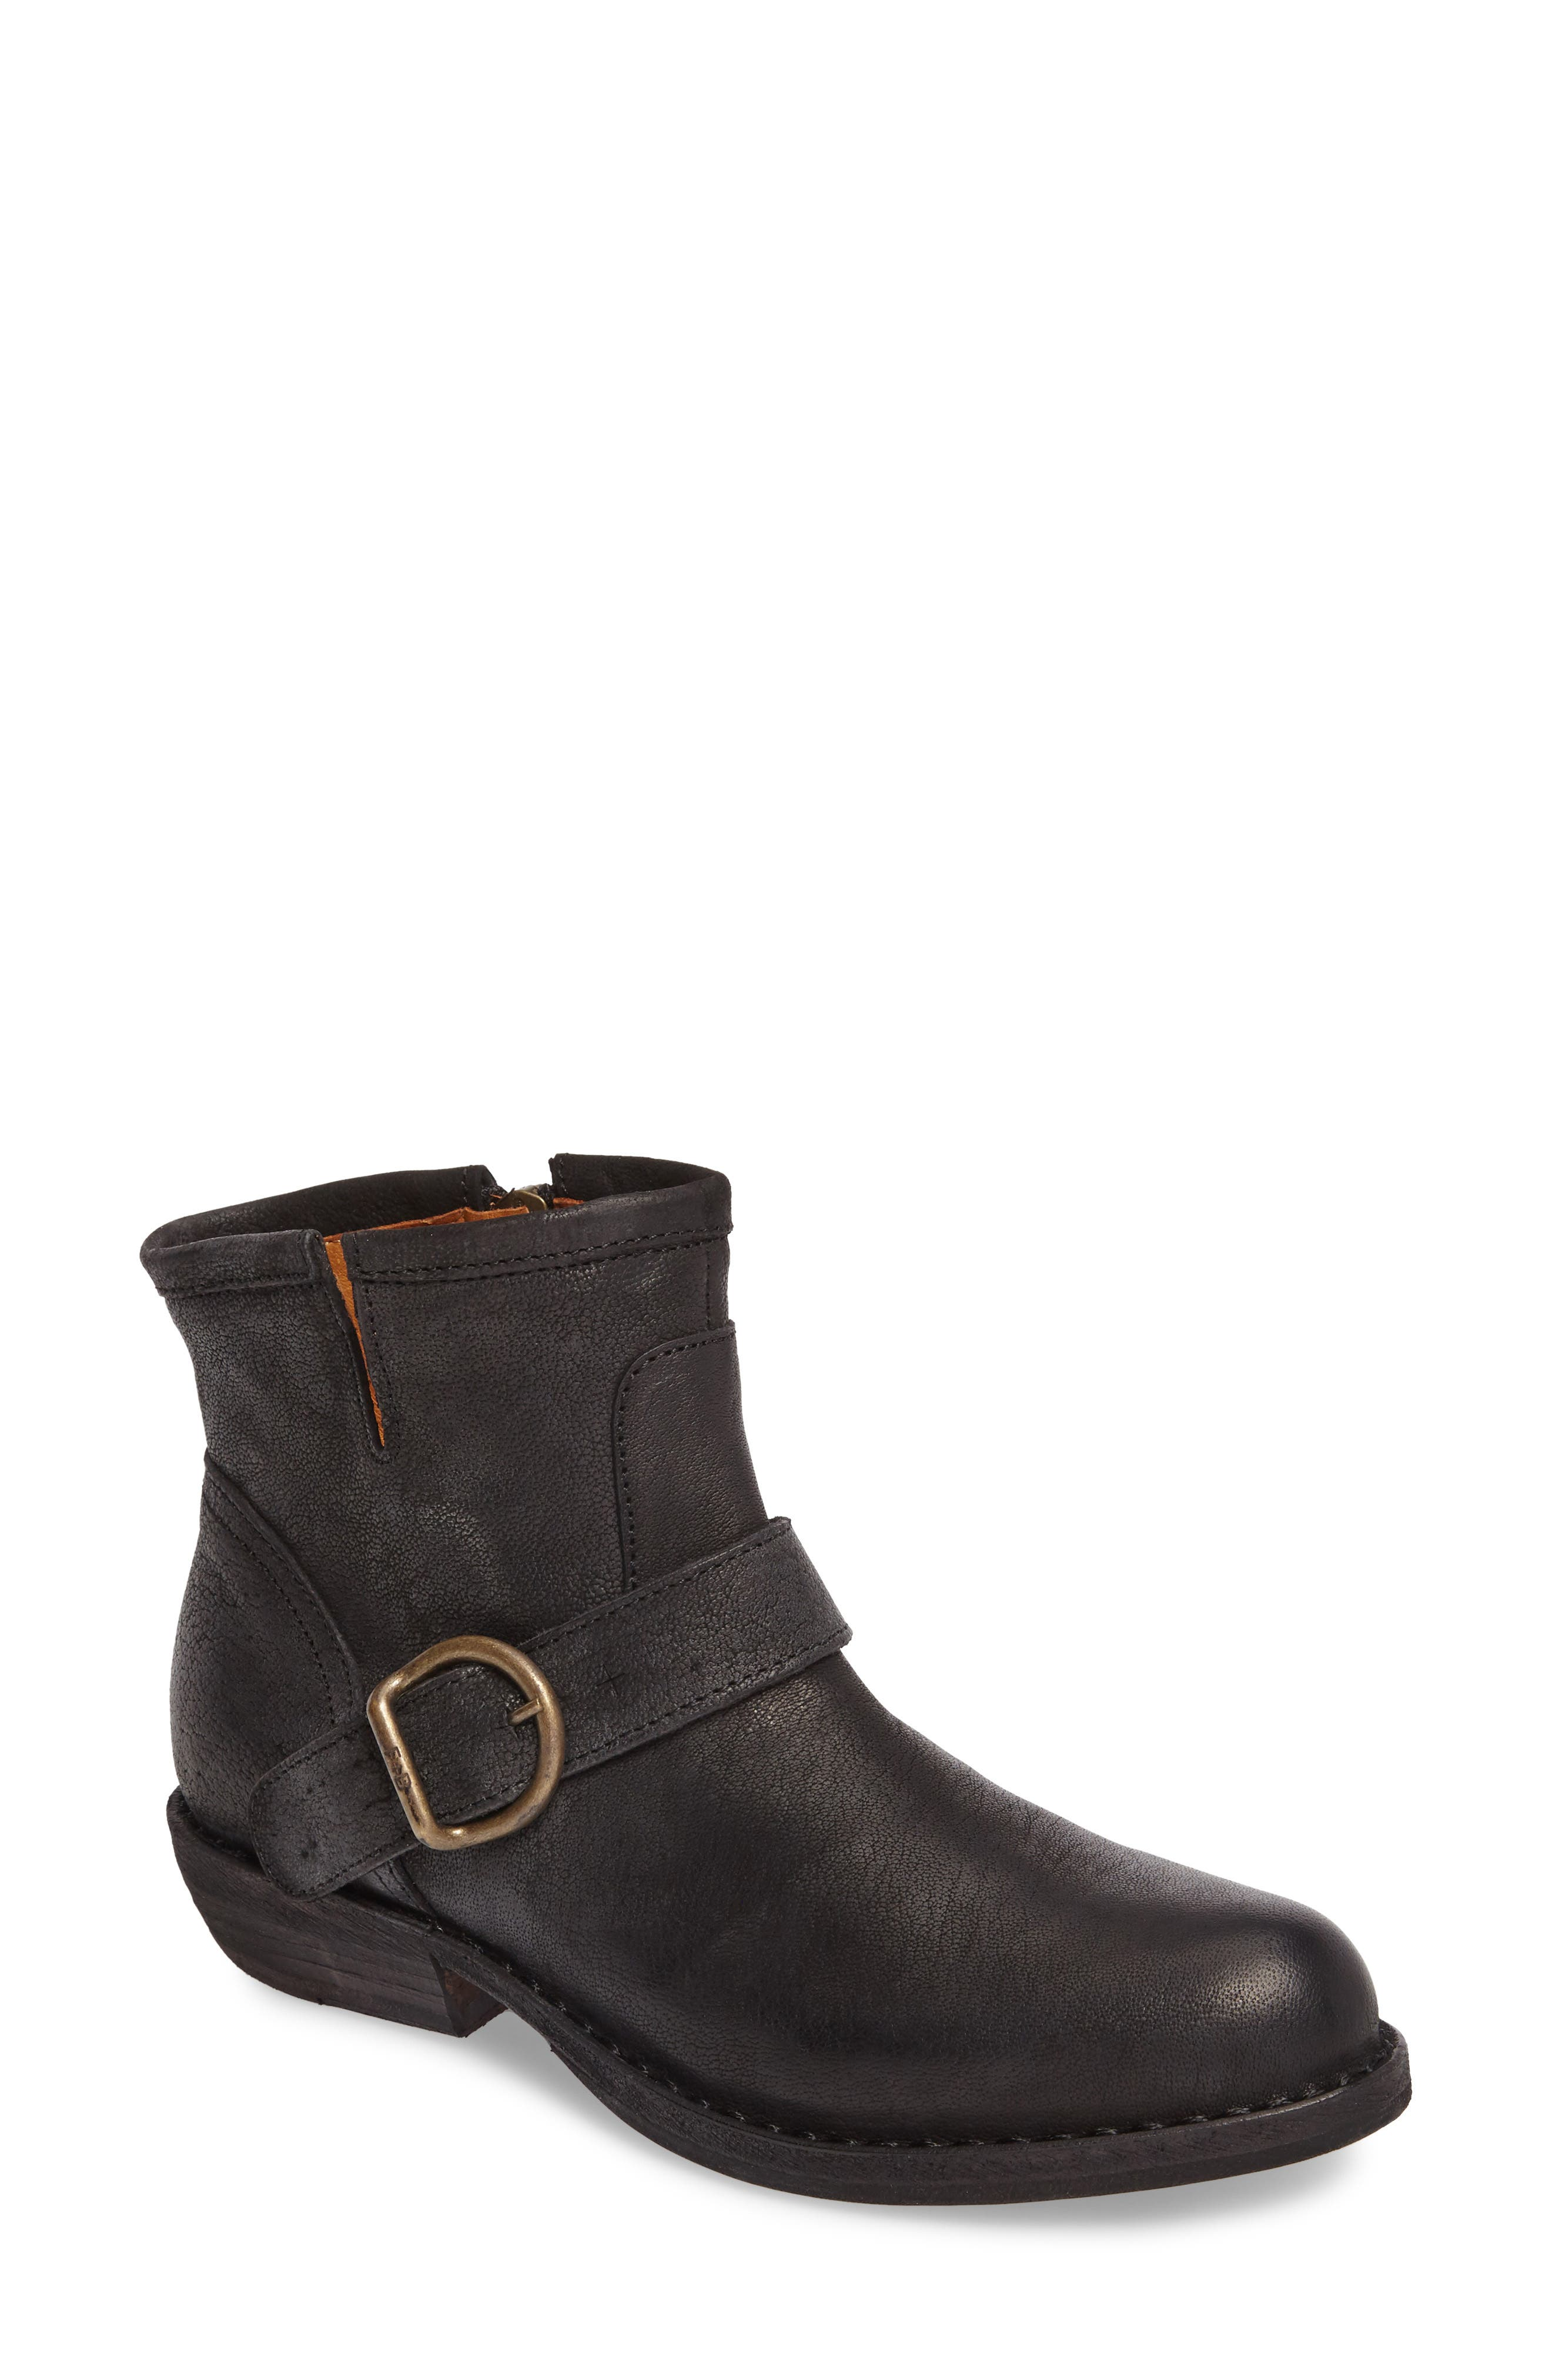 Main Image - Fiorentini + Baker 'Chad' Textured Leather Bootie (Women)